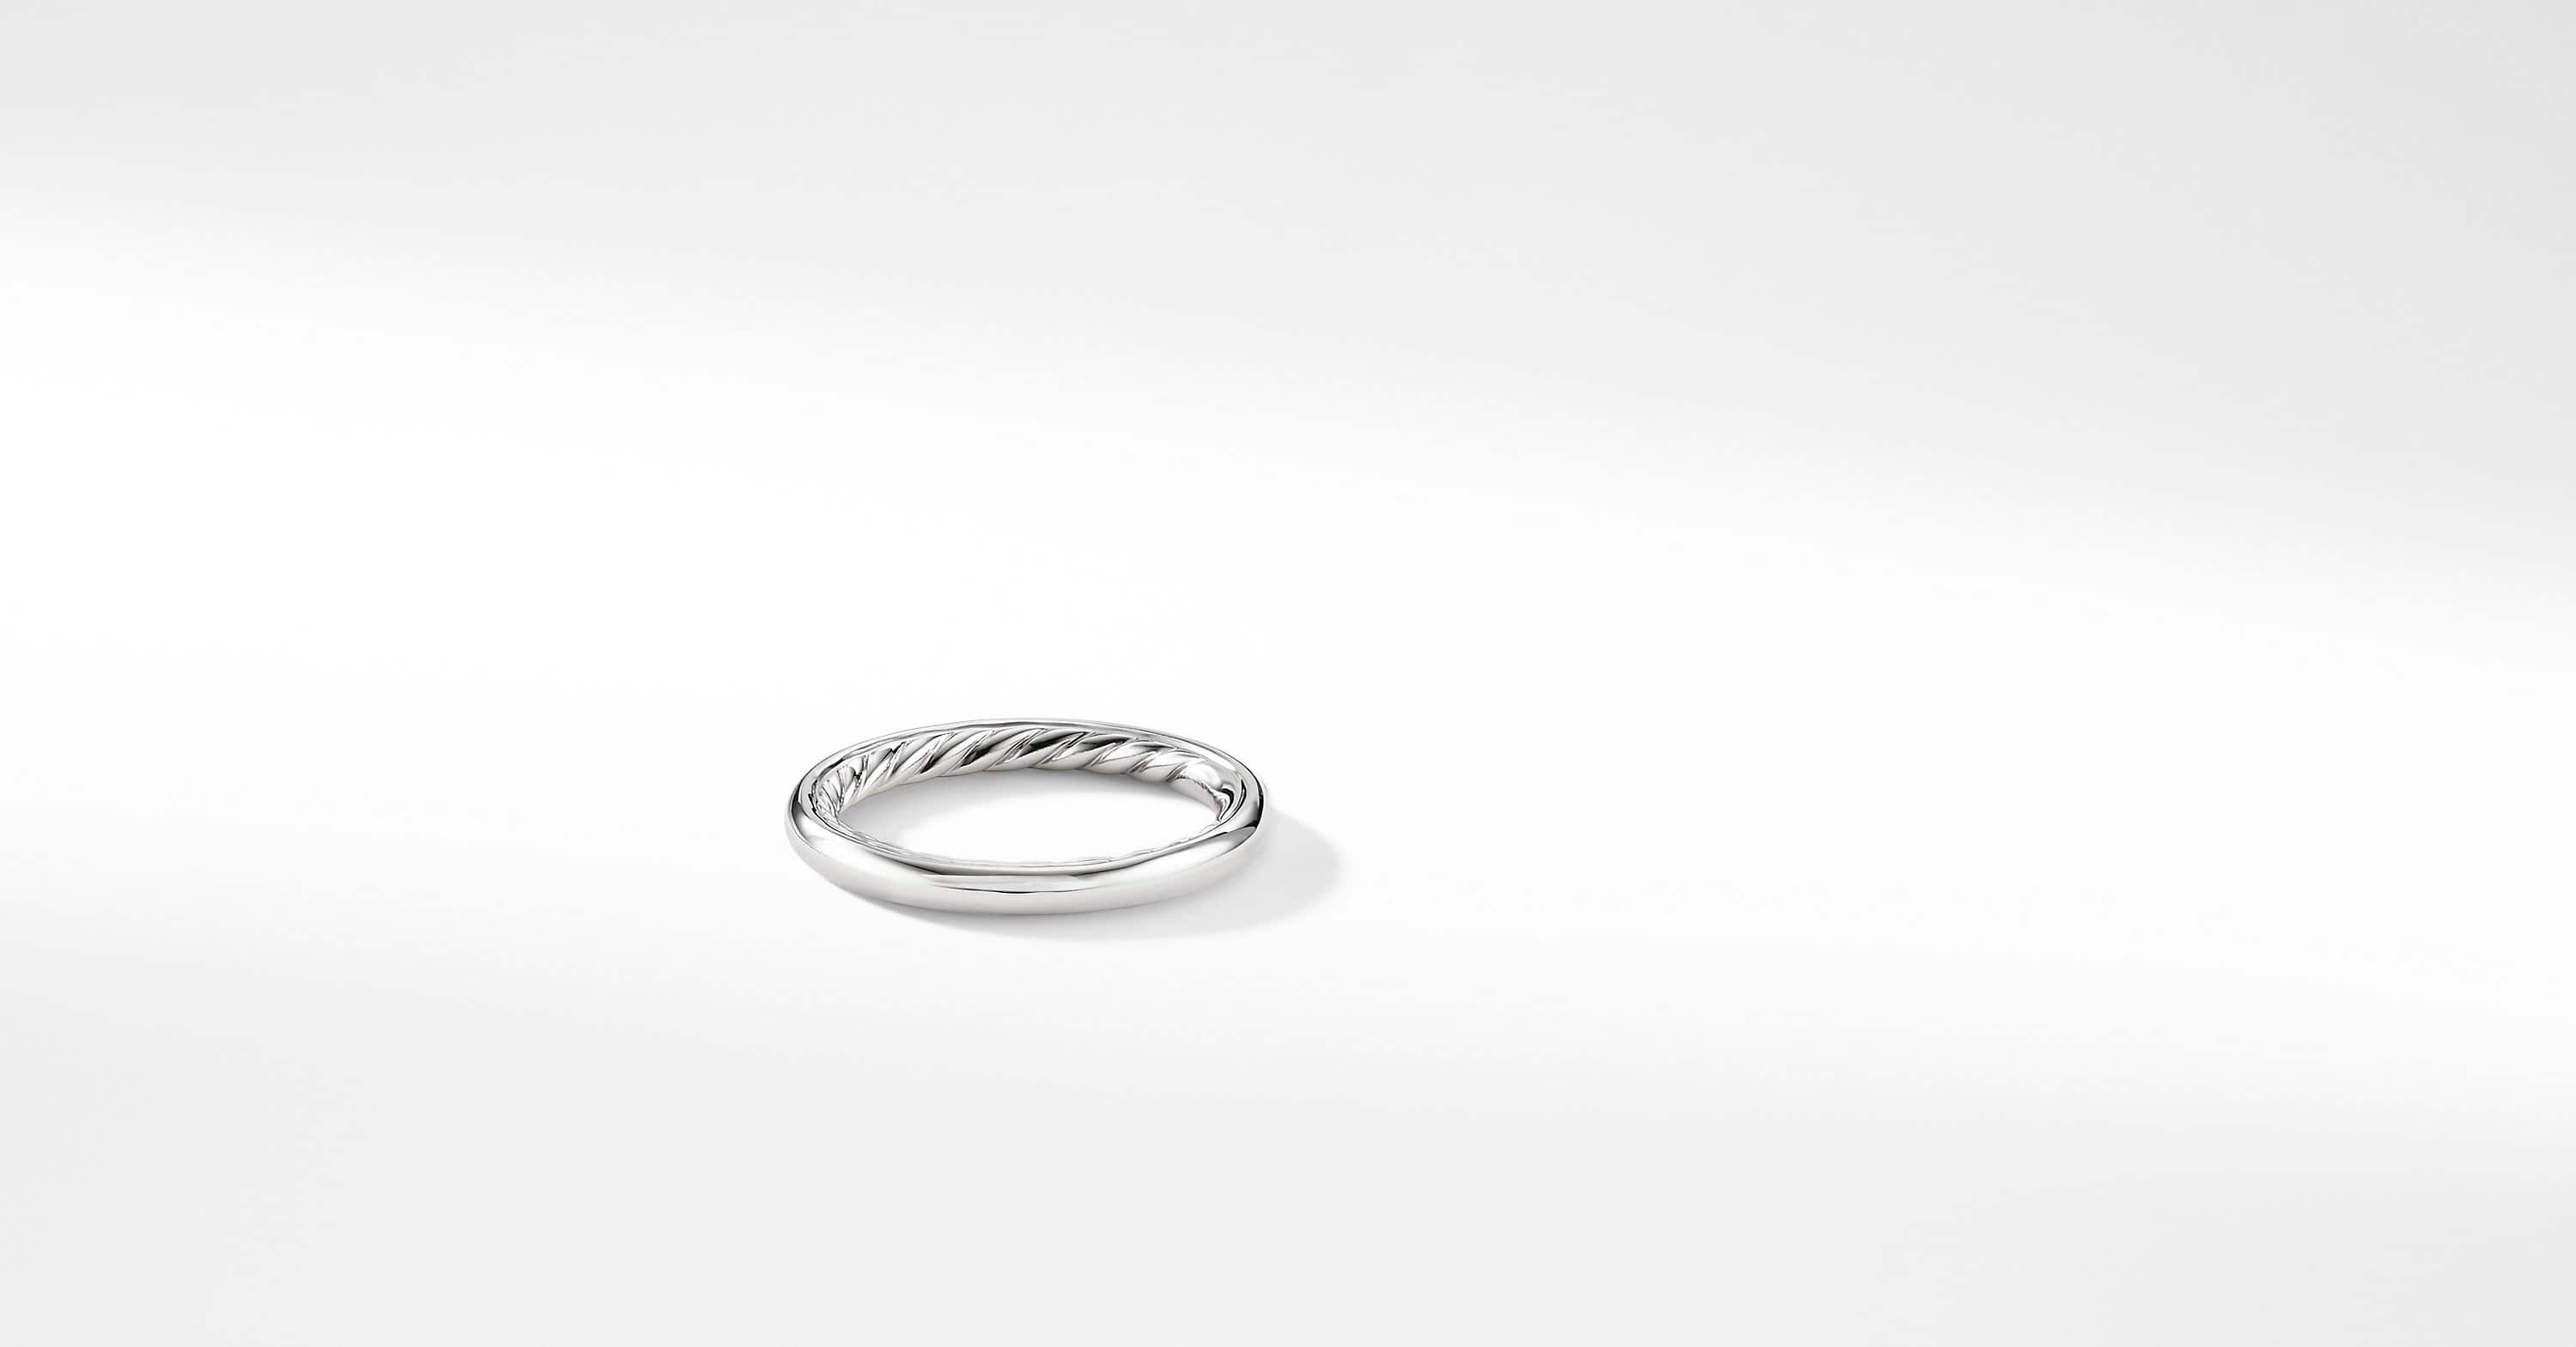 DY Eden Smooth Wedding Band in Platinum, 2.5mm